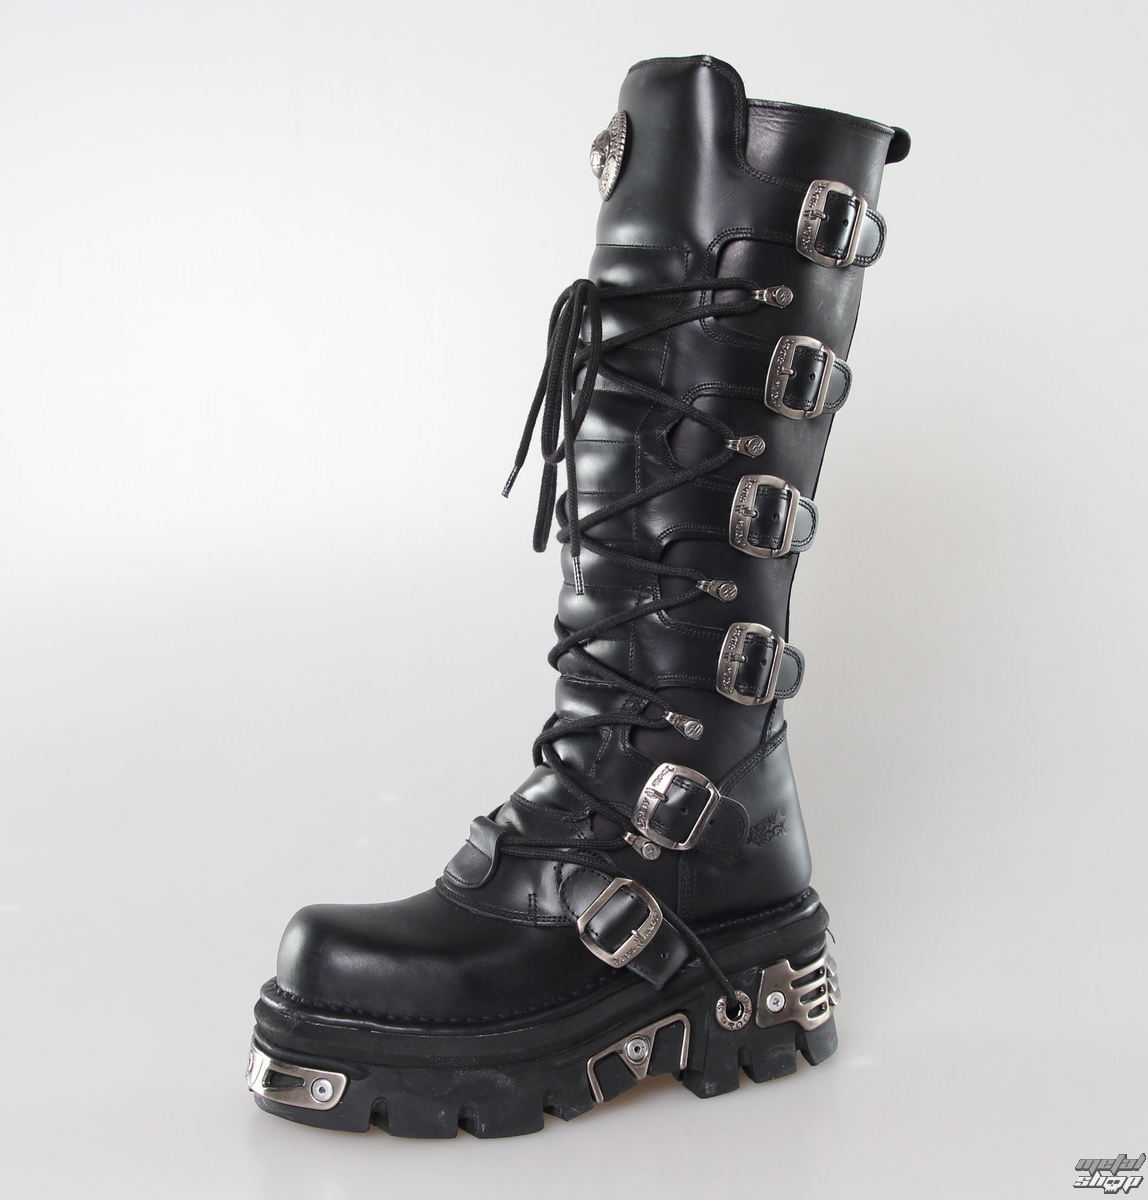 Boots Leather   6 Buckle Boots (272 S1) Black   NEW ROCK